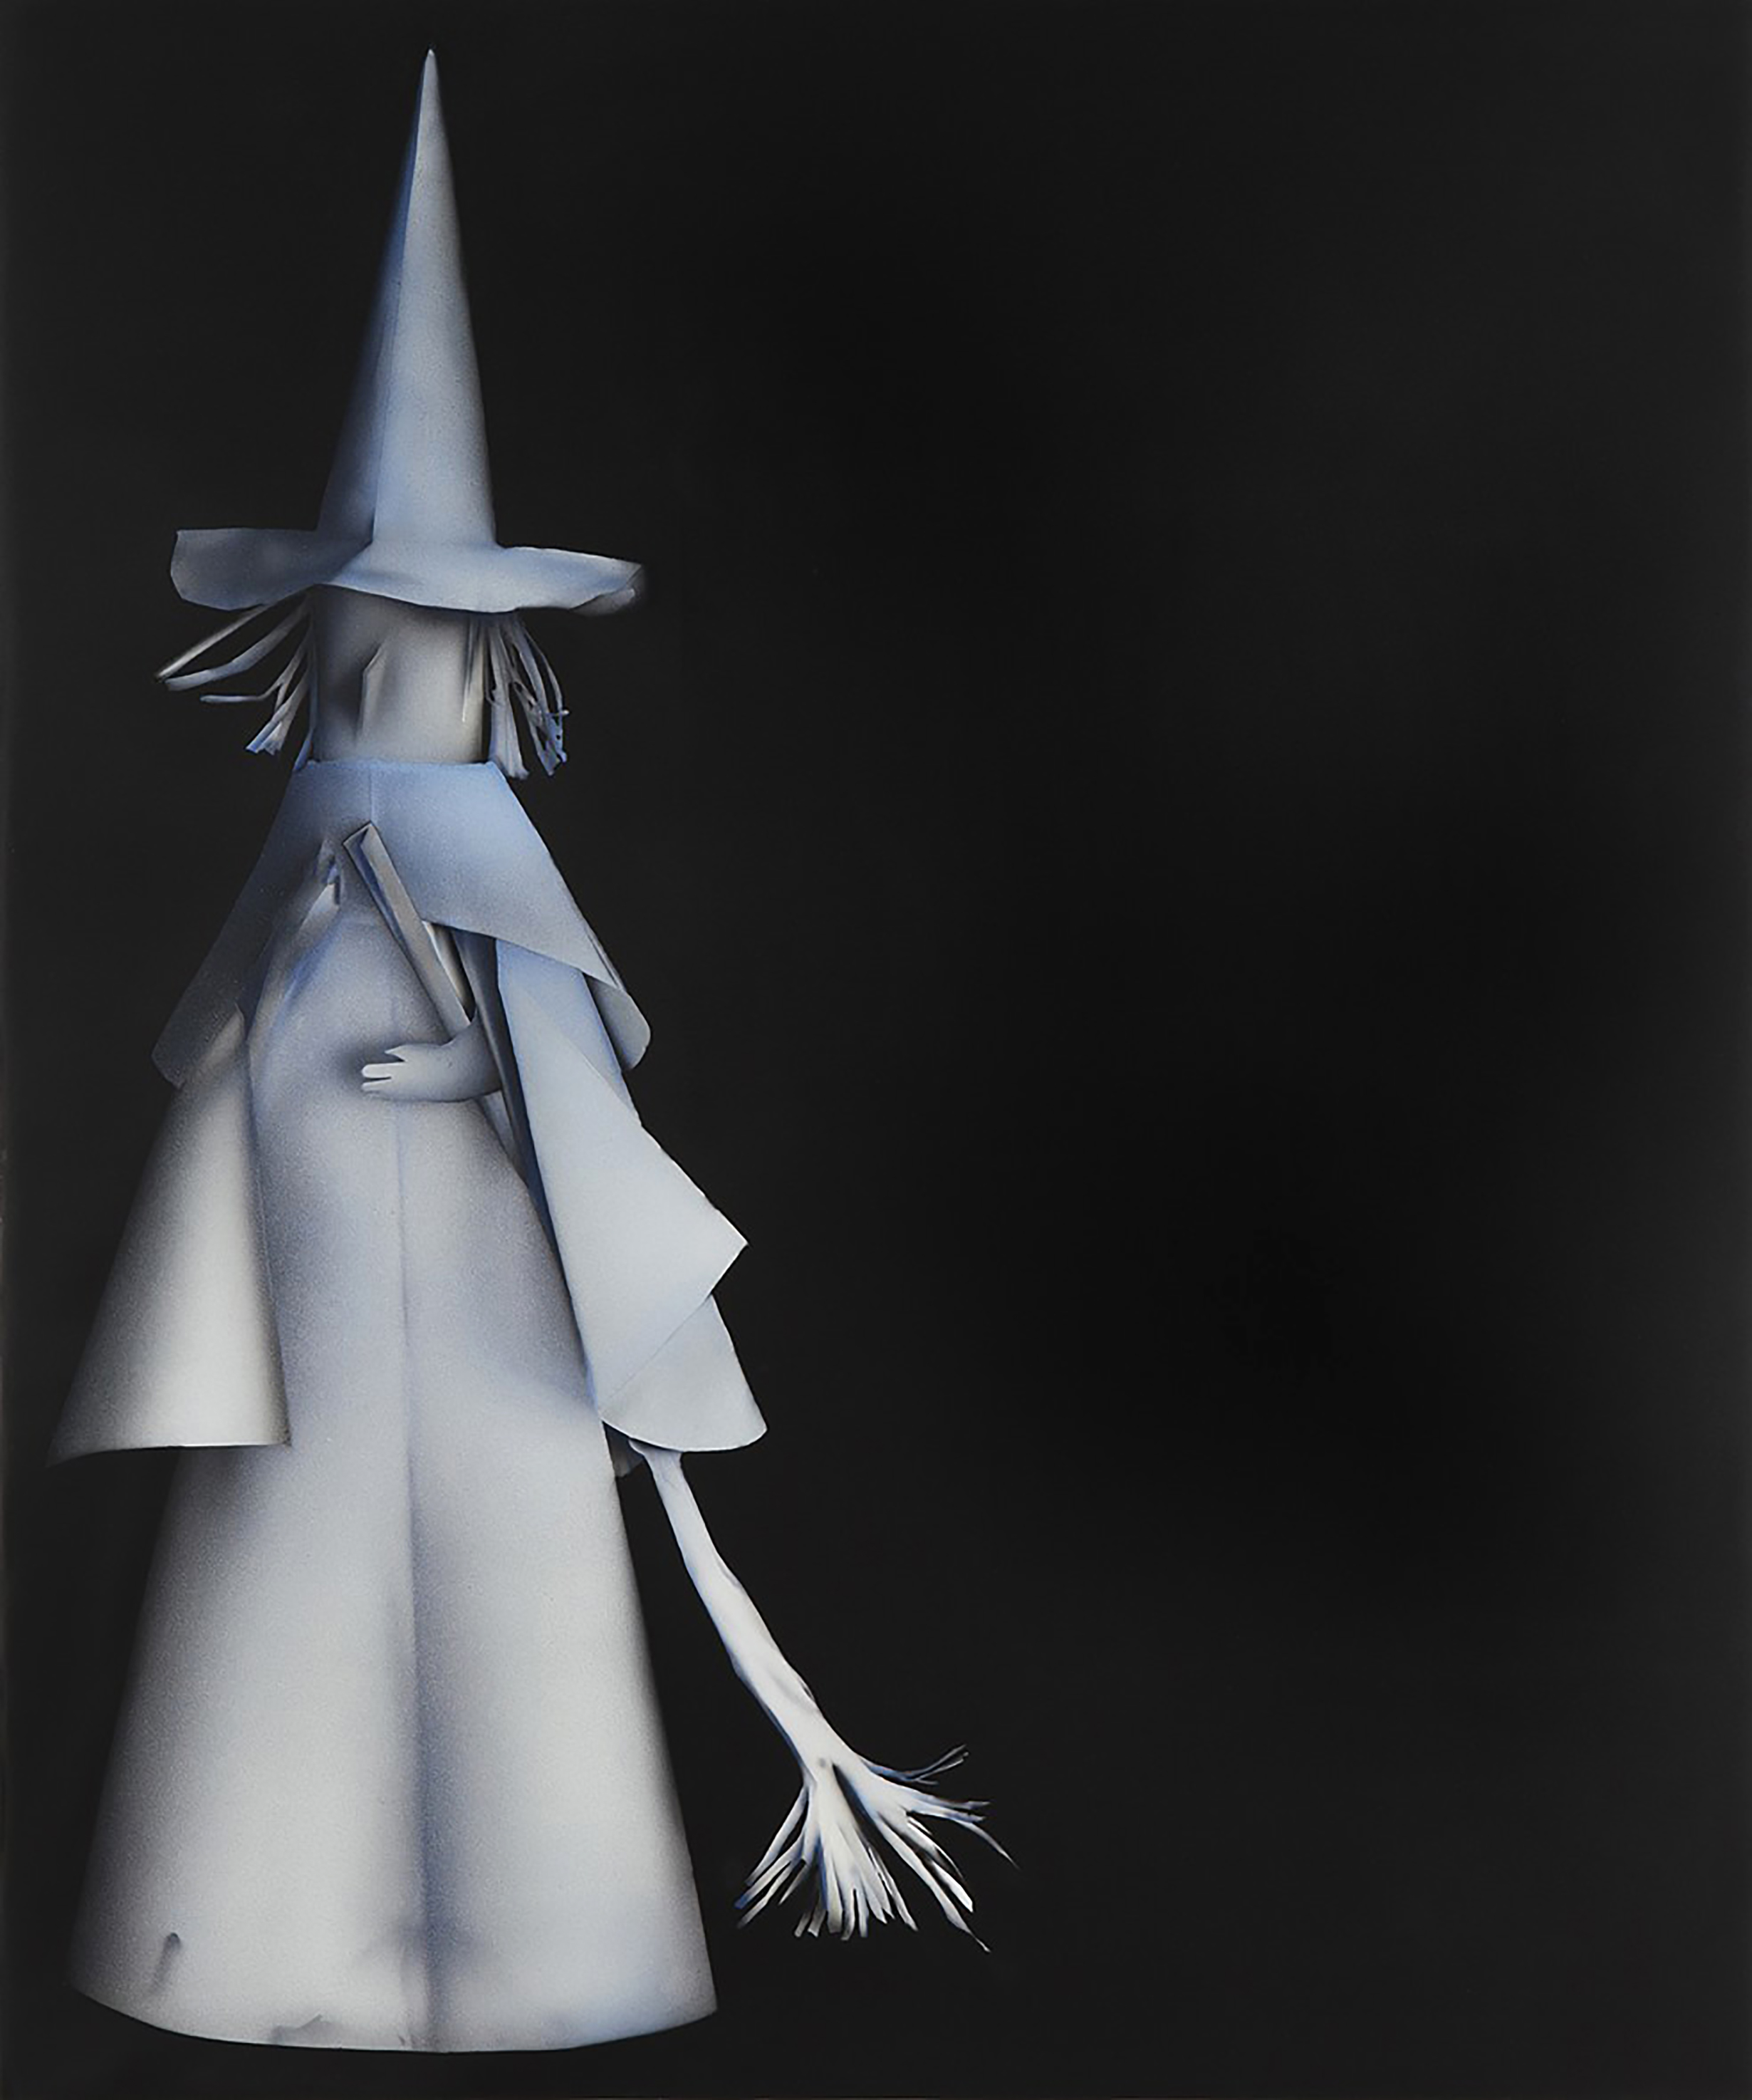 """Kara Joslyn, """"Up the Coven! (witch)"""", 2016. 72 in. x 60 in. Acrylic & polymer car paint on panel. (courtesy: Alex Kershaw)"""